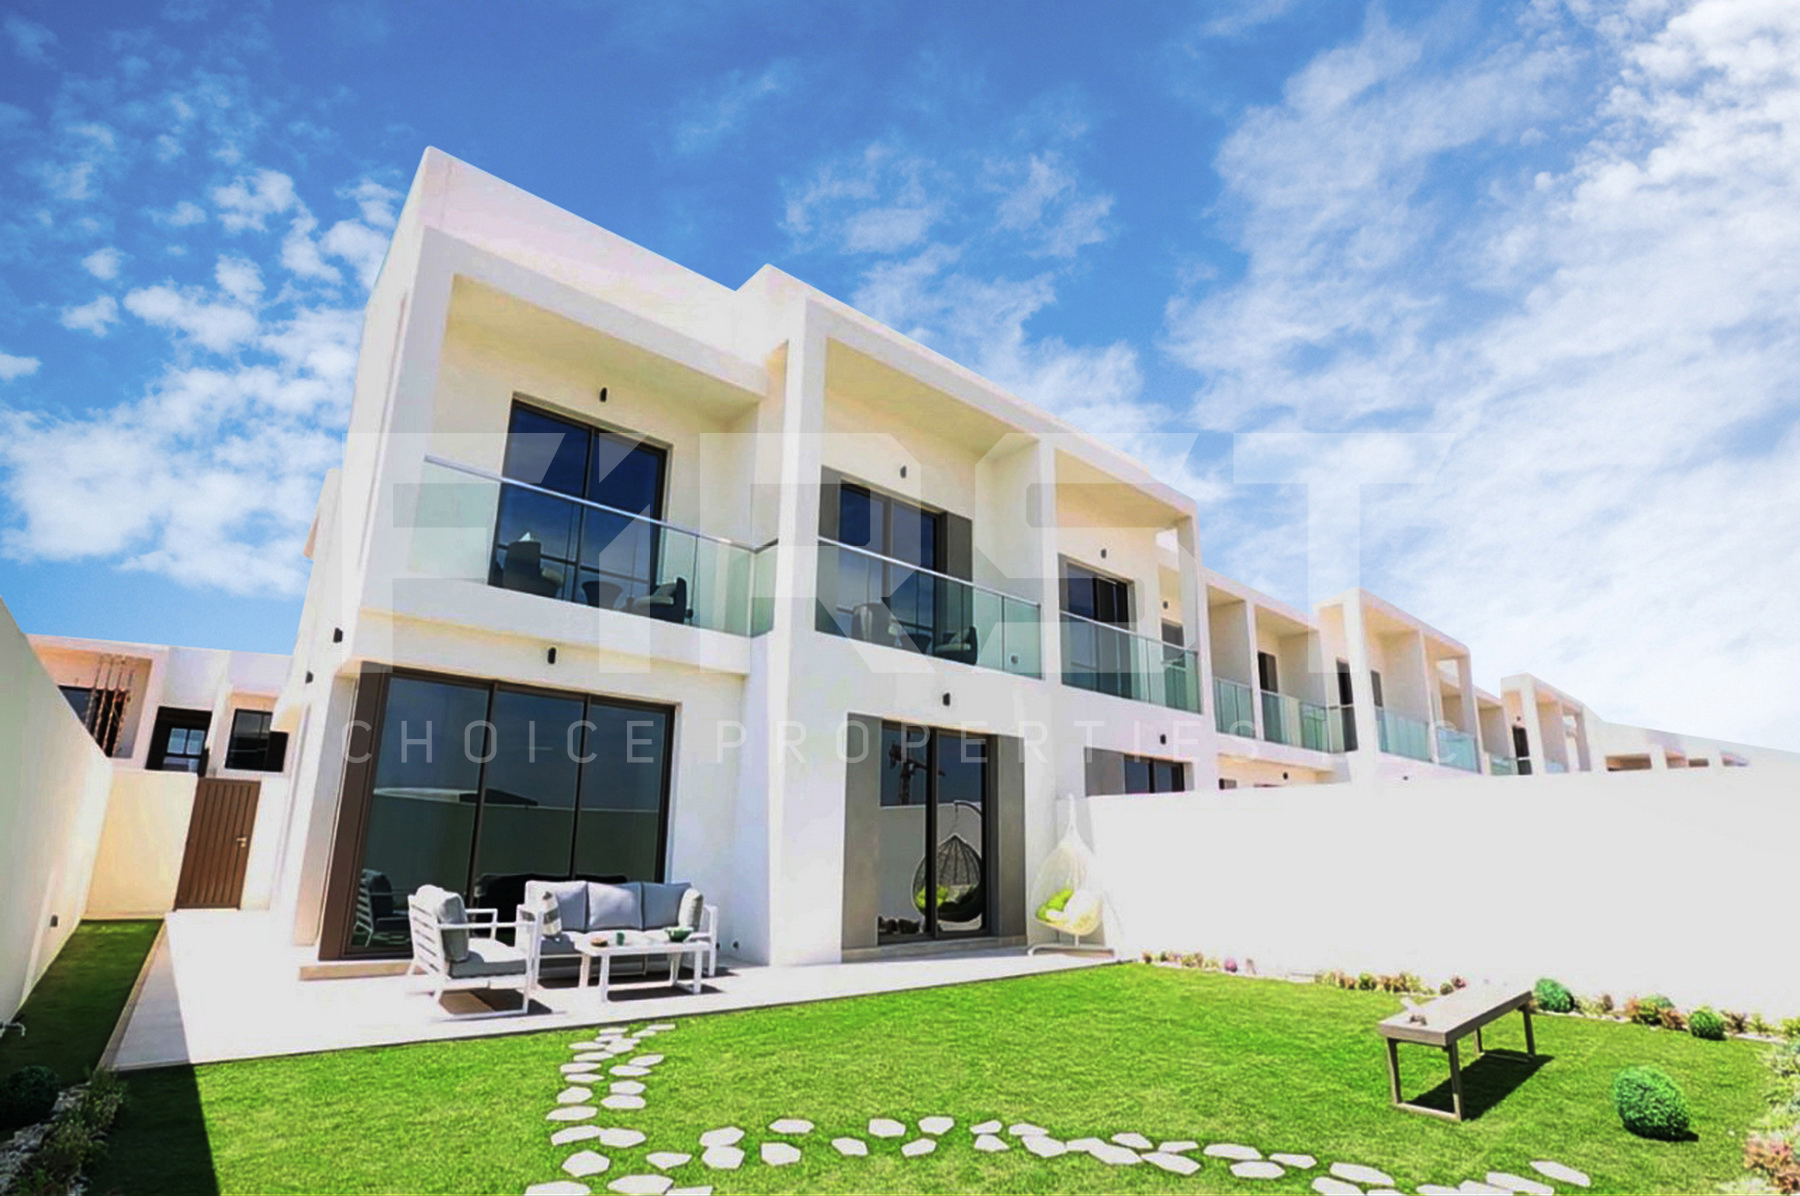 External Photo of 3 Bedroom Townhouse Type 3EA in Yas Acres Yas Island Abu Dhabi UAE (3).jpg